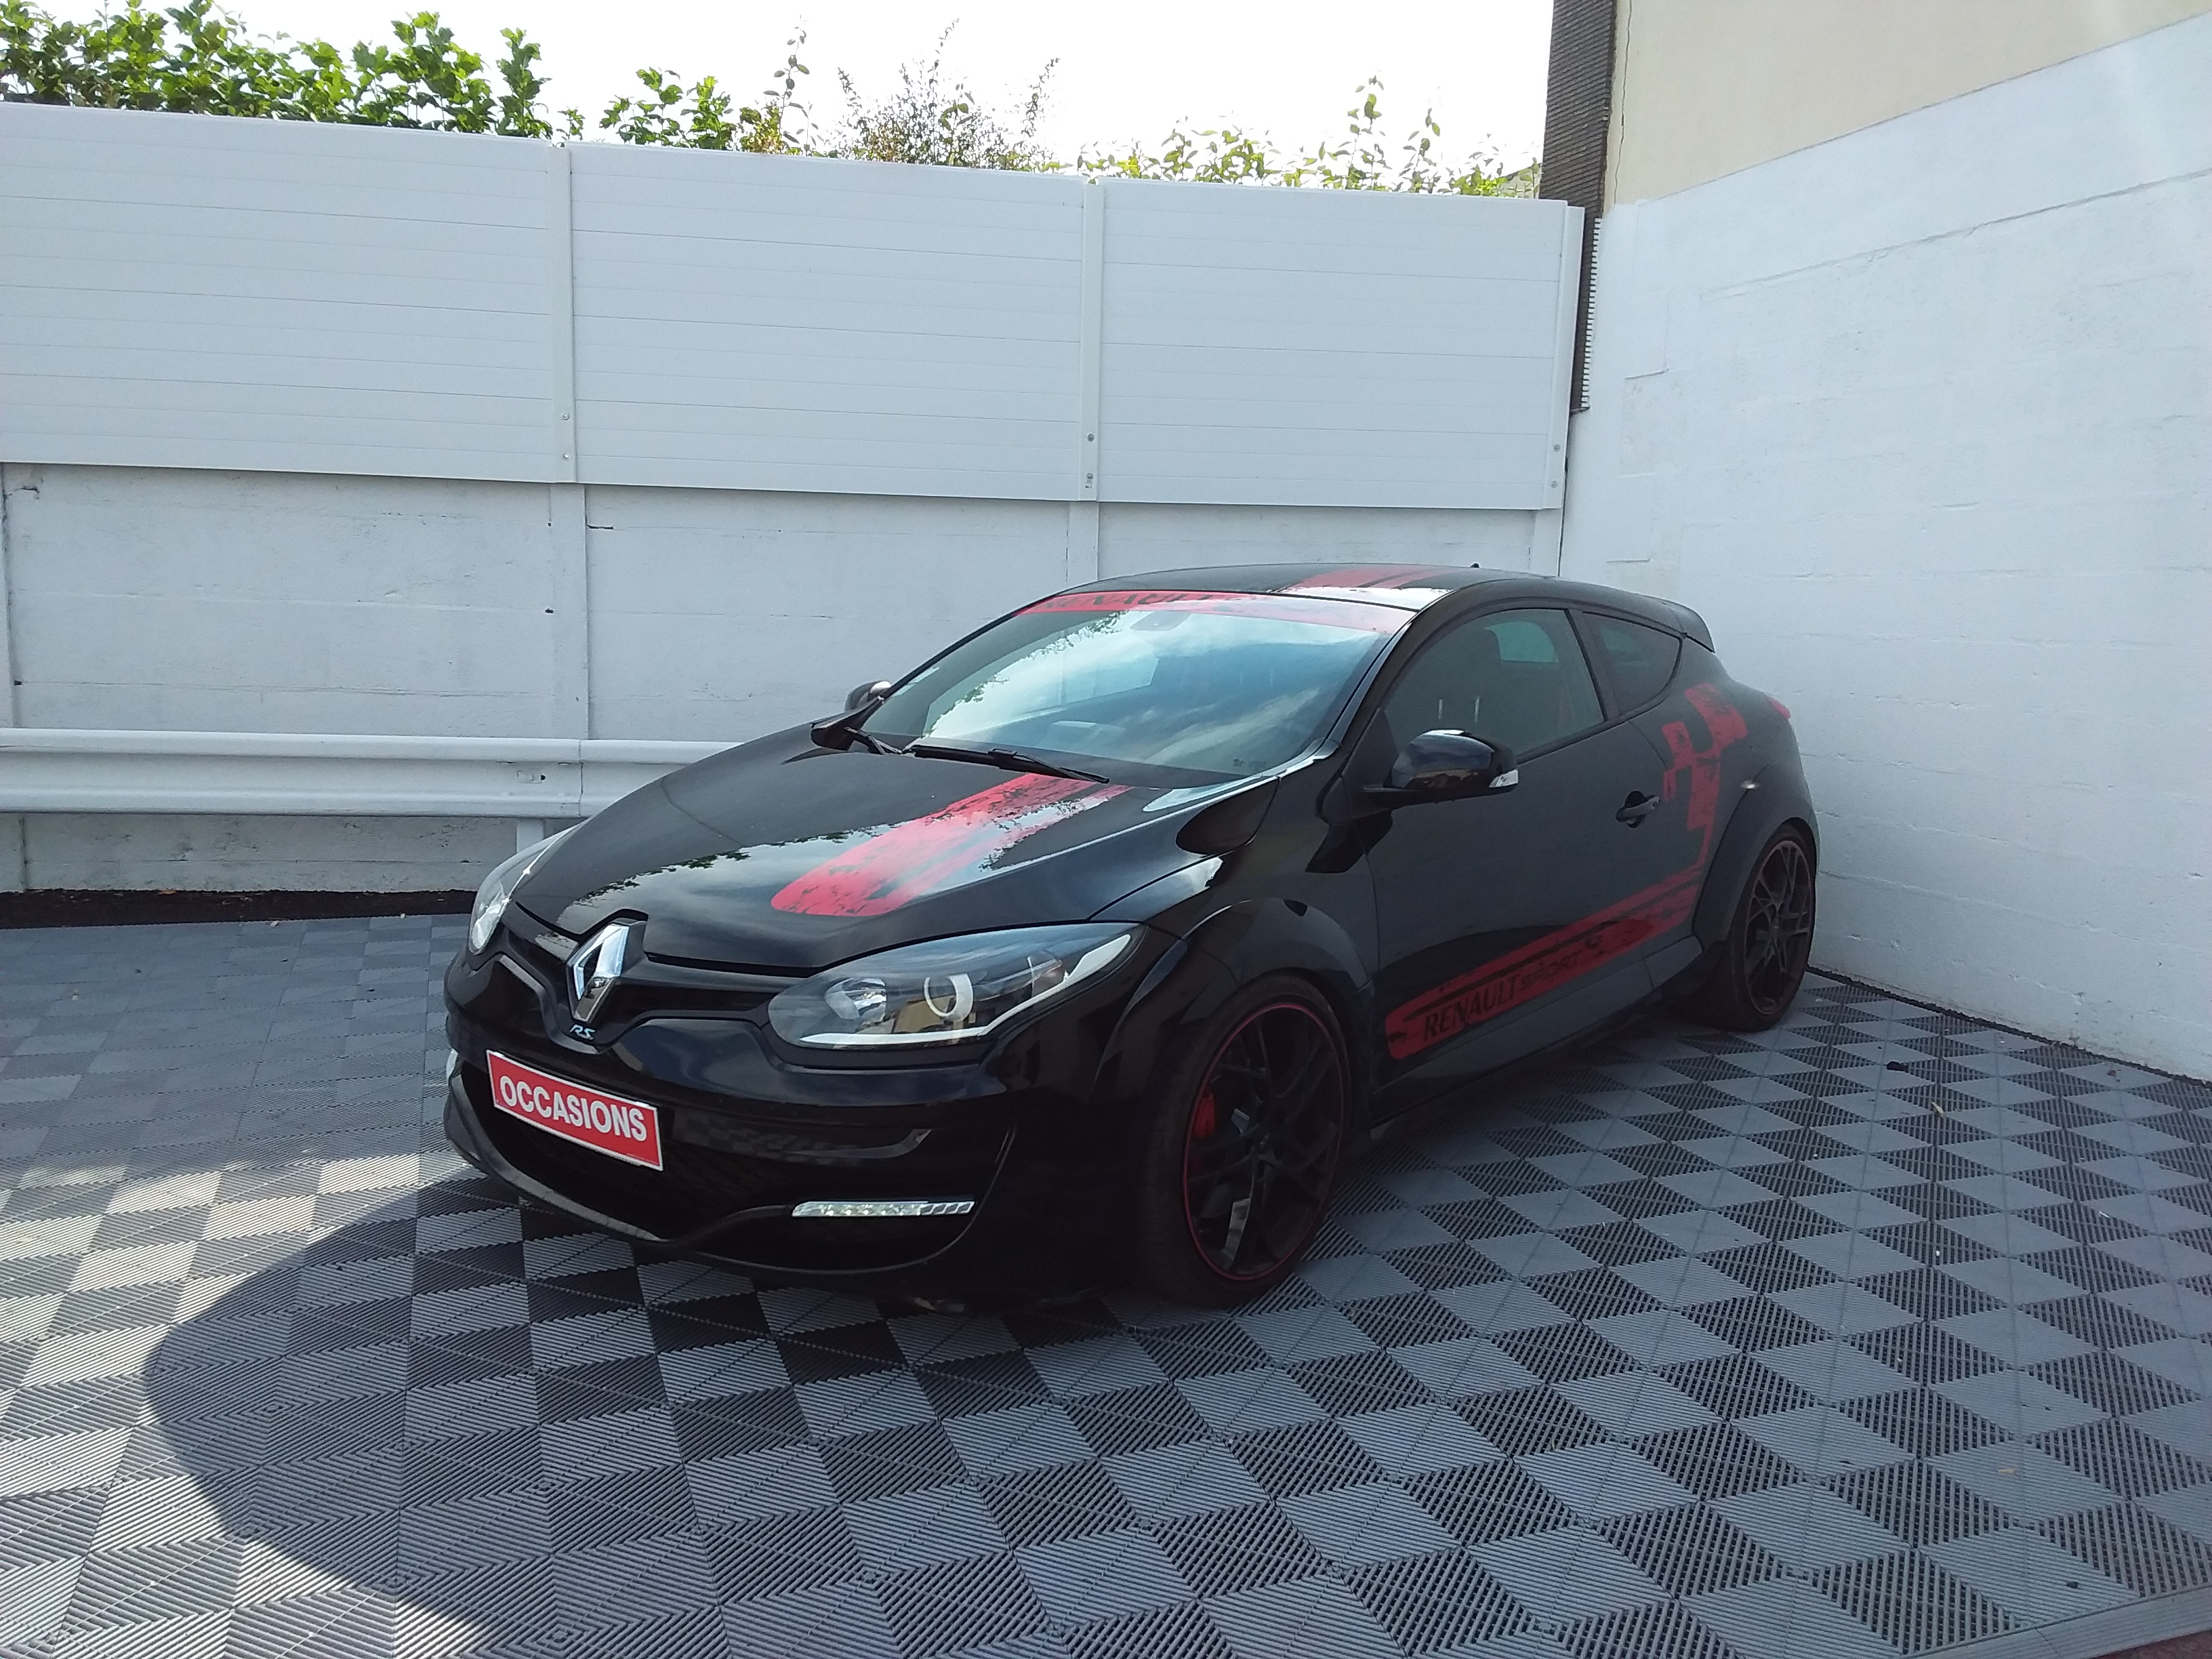 RENAULT MEGANE III COUPE 2.0 16V 275 S&S RS d'occasion